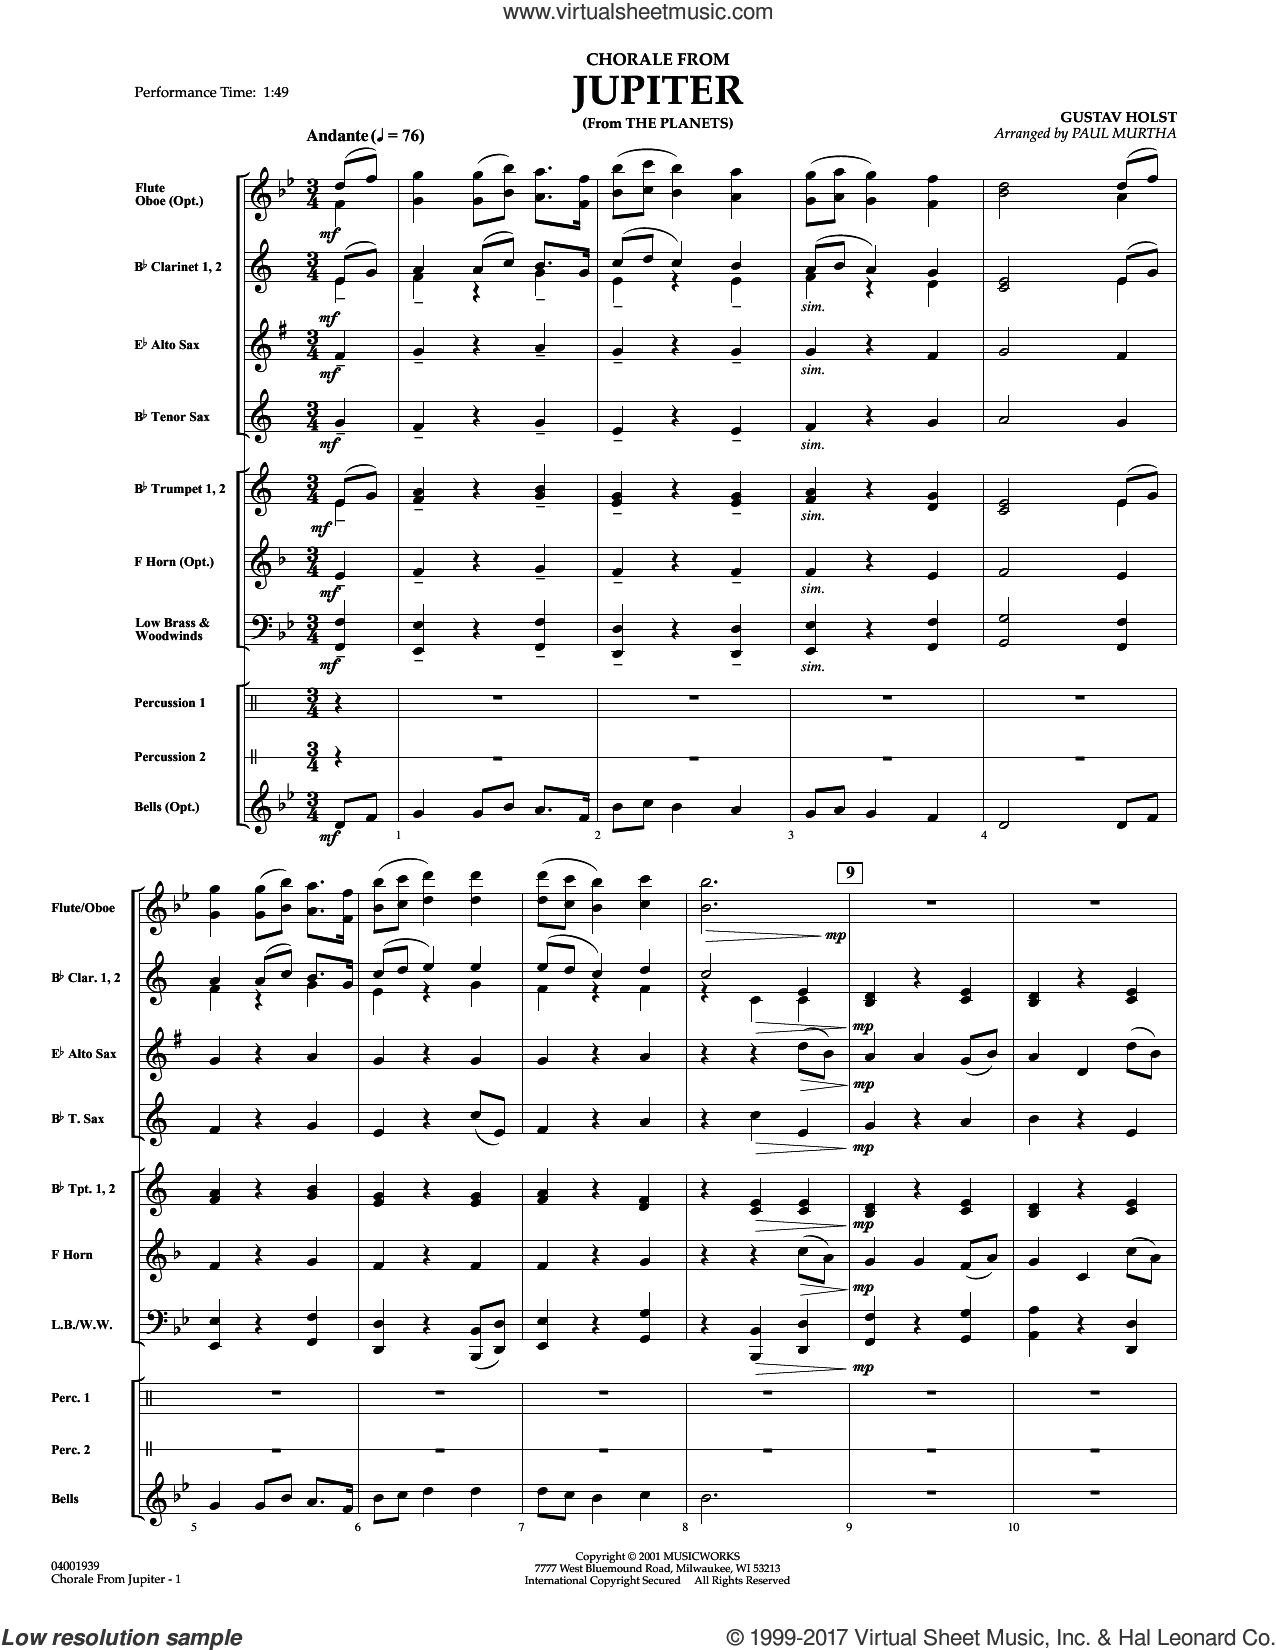 Chorale from jupiter arranged by paul murtha score pdf